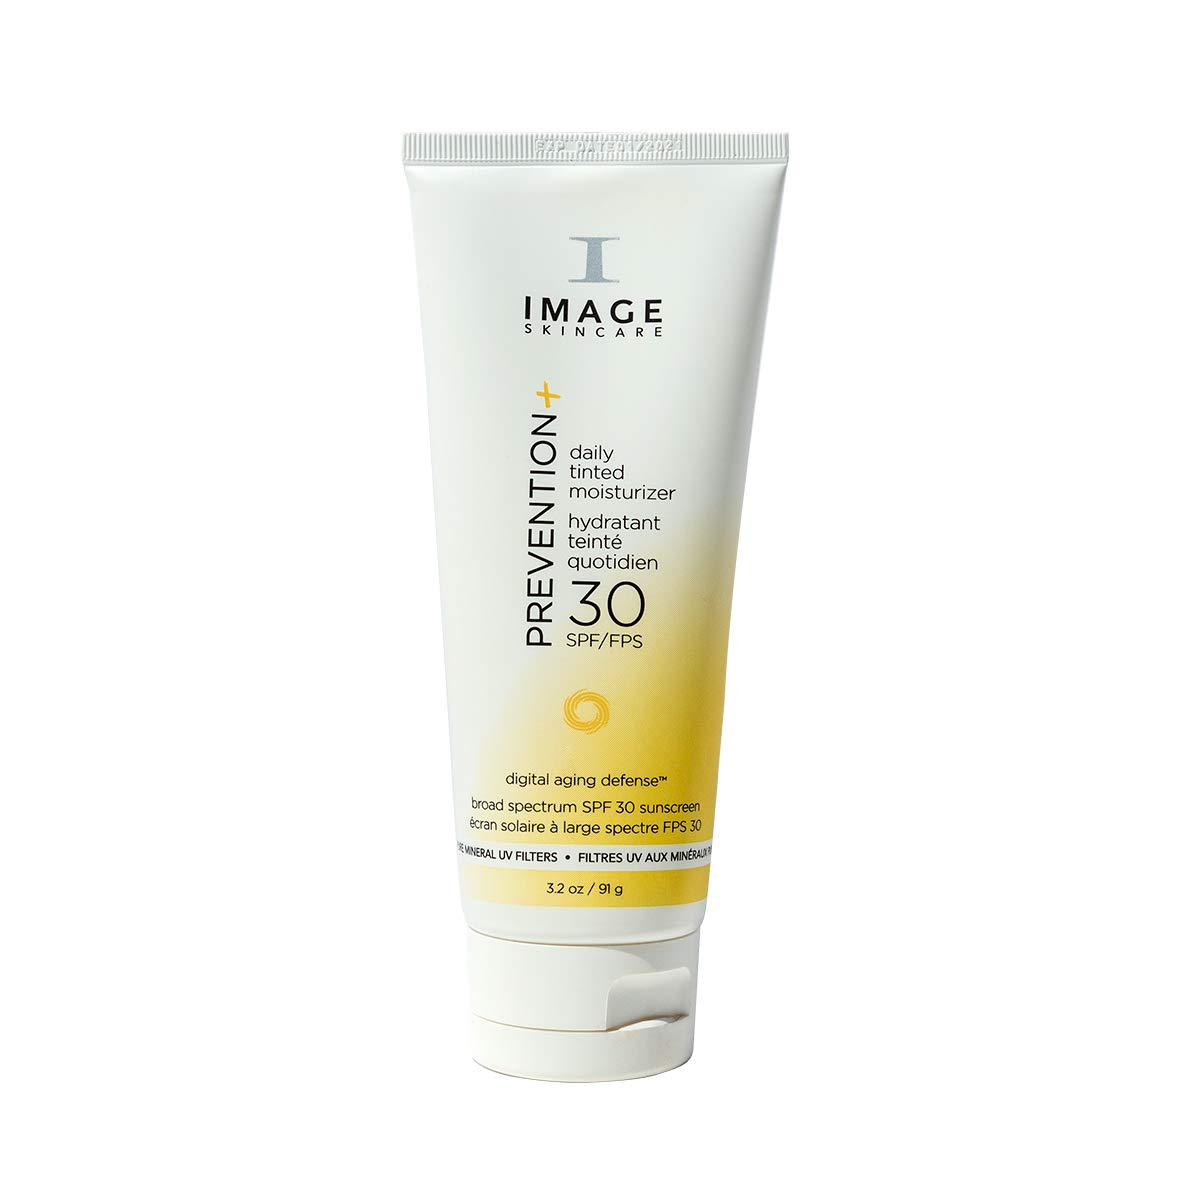 Image Skincare Prevention Daily Tinted SPF 30 Moisturizer, 3.2 oz(Packaging may Vary)